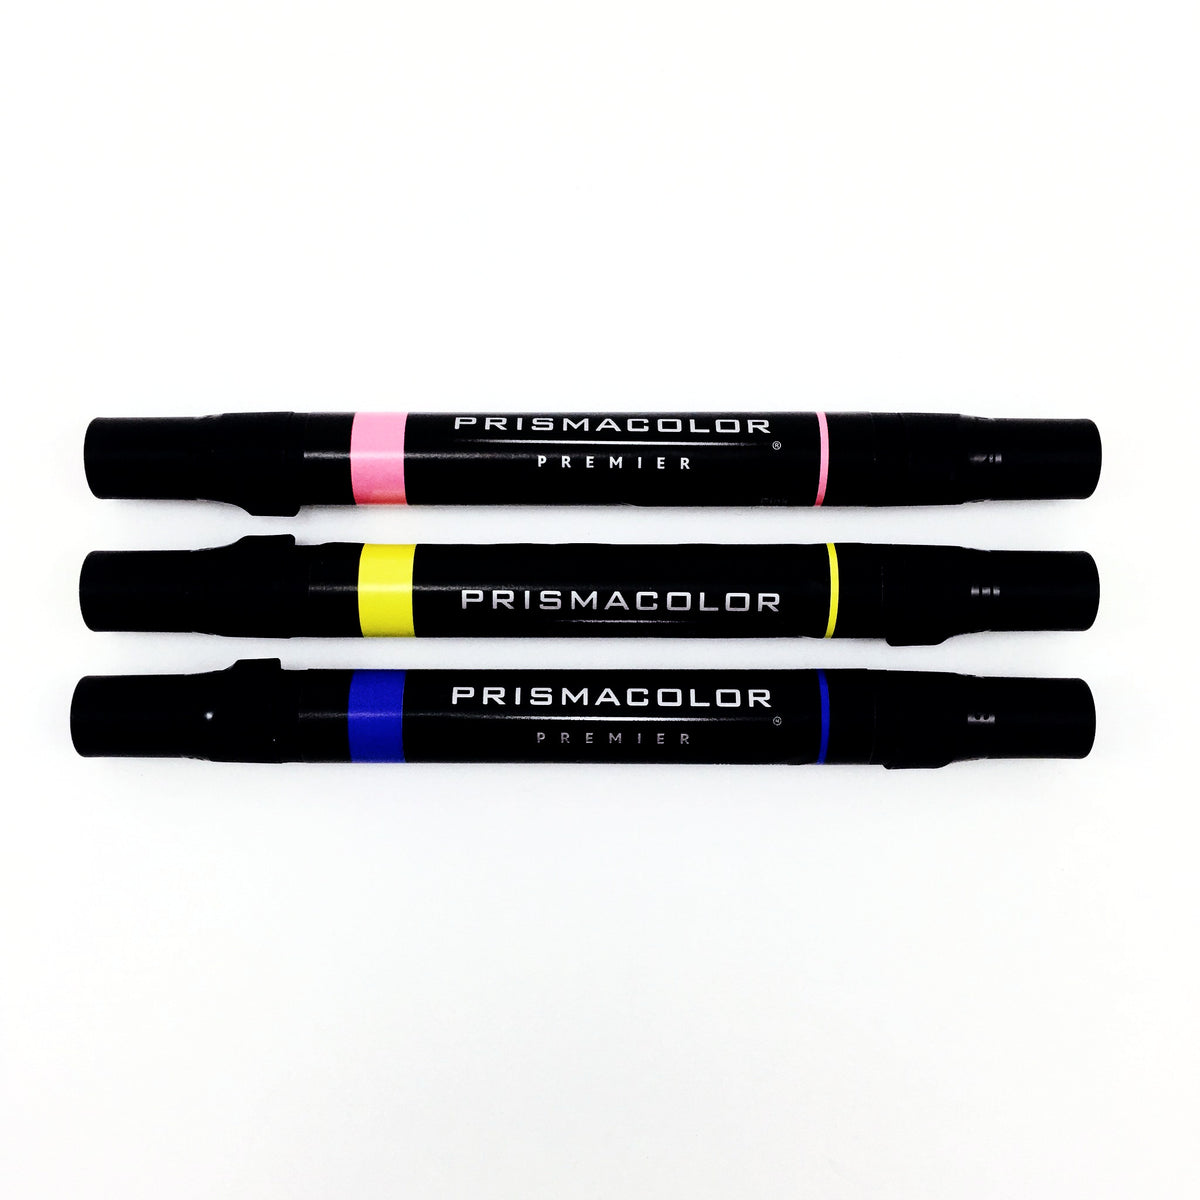 Prismacolor Premier Chisel + Fine Double-Ended Marker